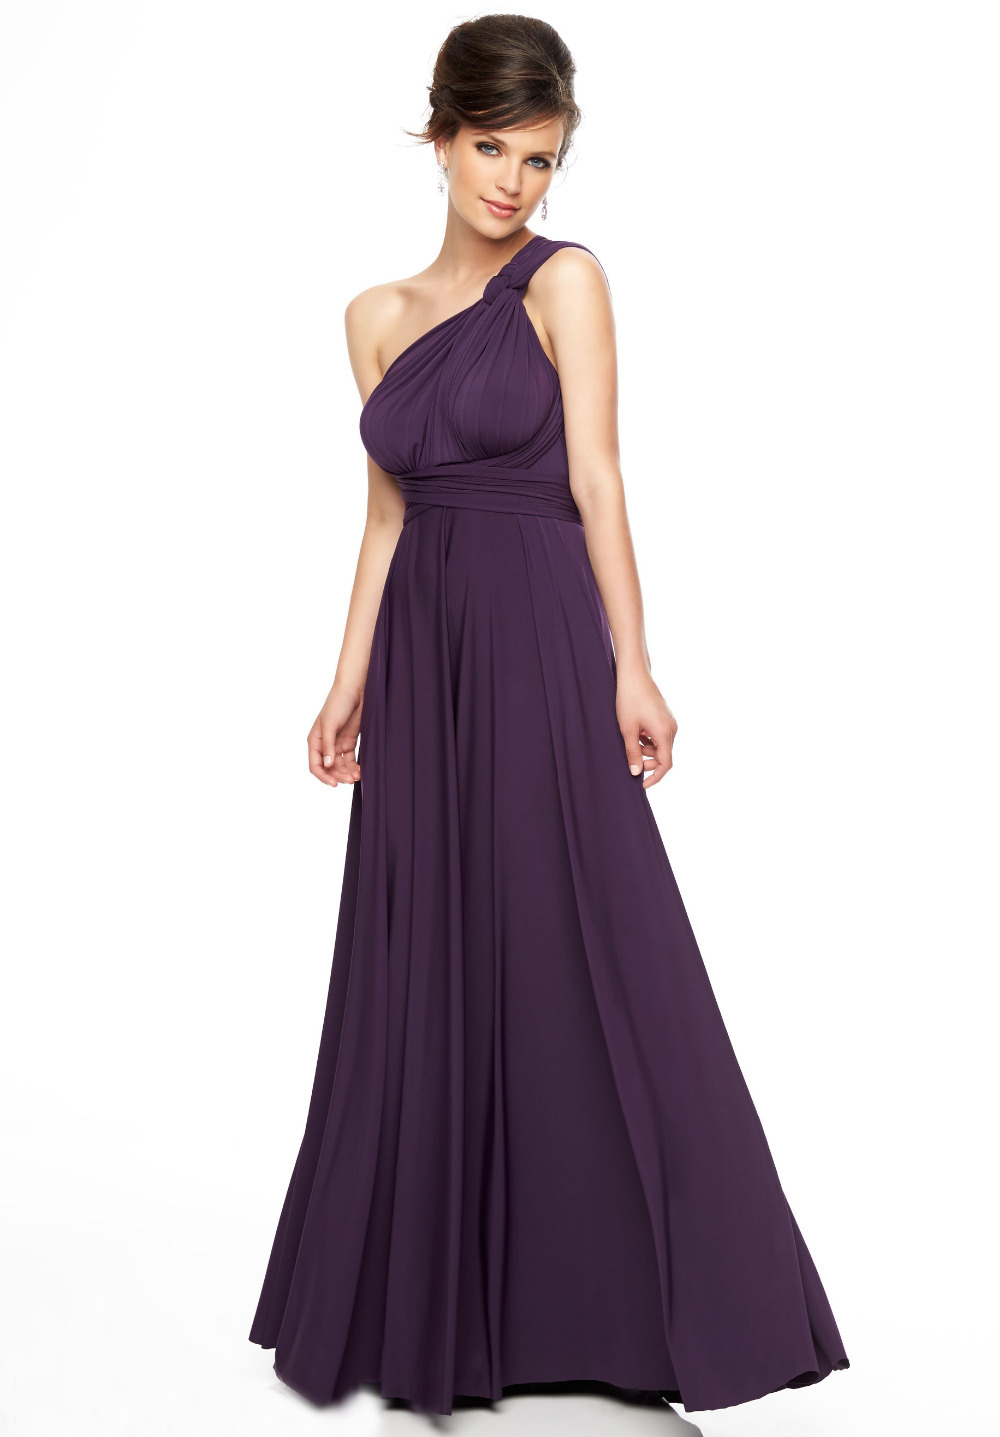 Get Quotations · Long chiffon purple bridesmaid dresses 2015 sexy one  shoulder cheap plus size wedding party dress gaun c9252a2e14